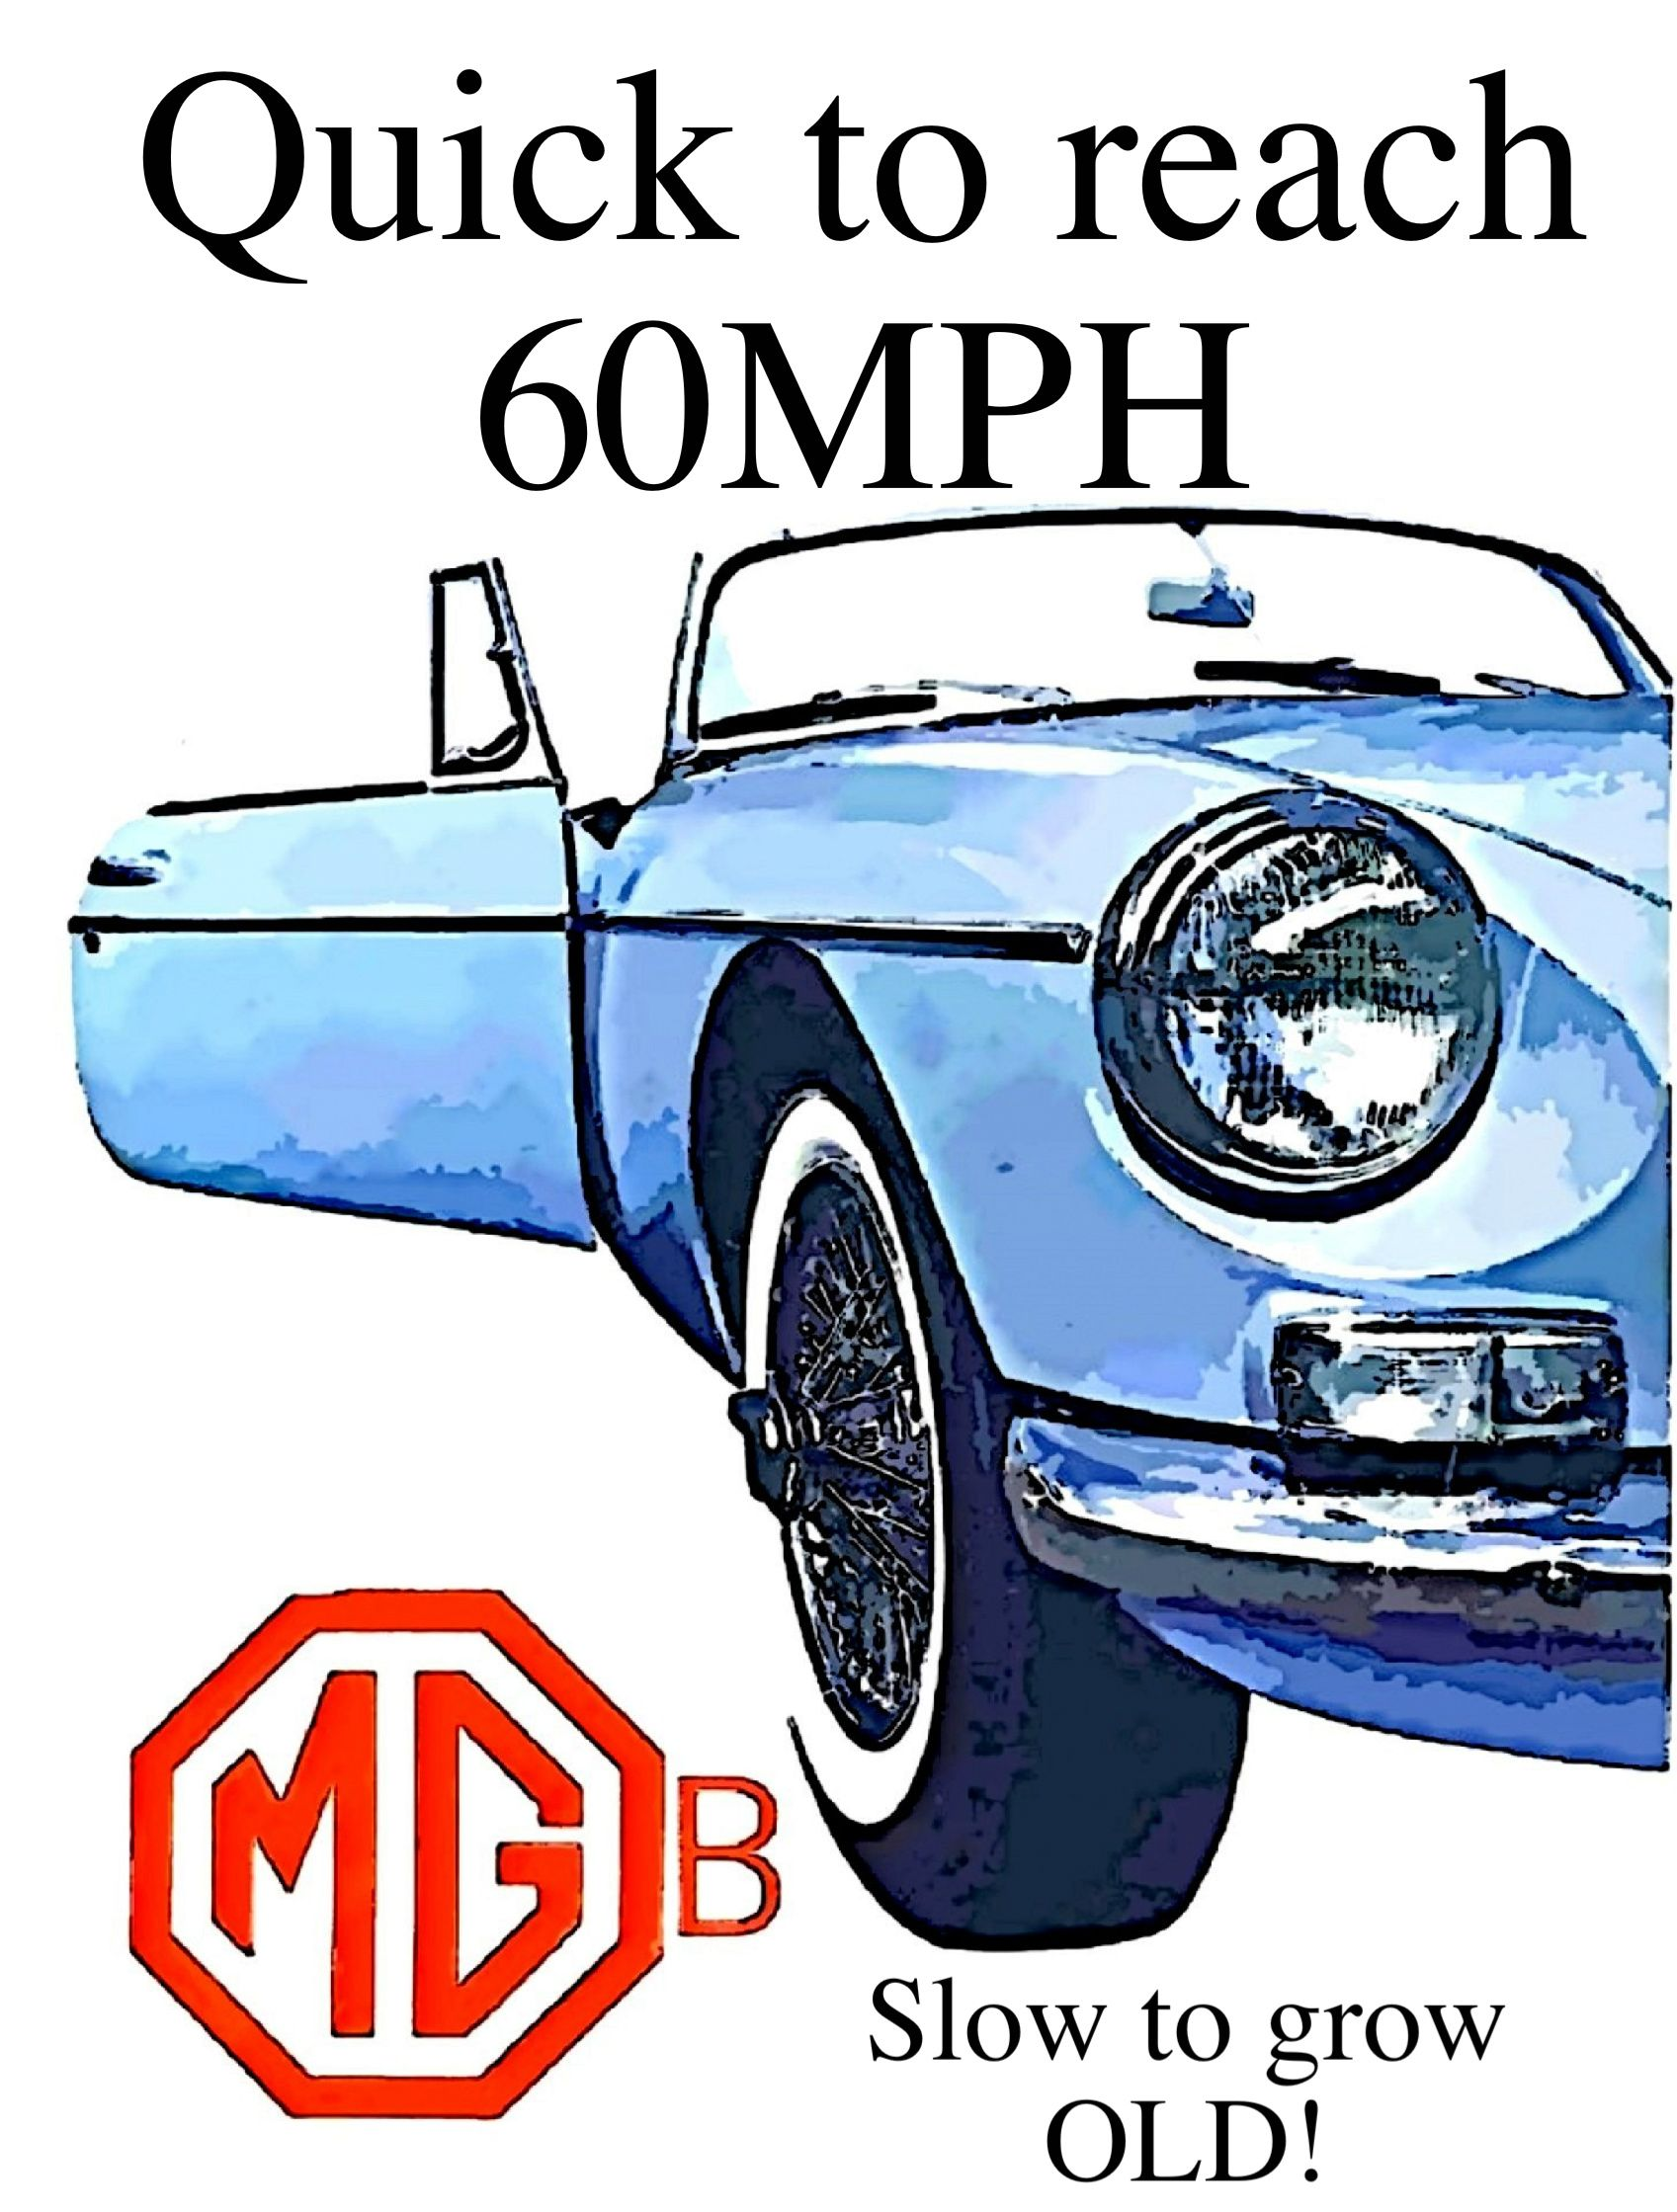 Pin By E Trinder On Classic Mg Cars Morris Garages Mg Cars Car Ads